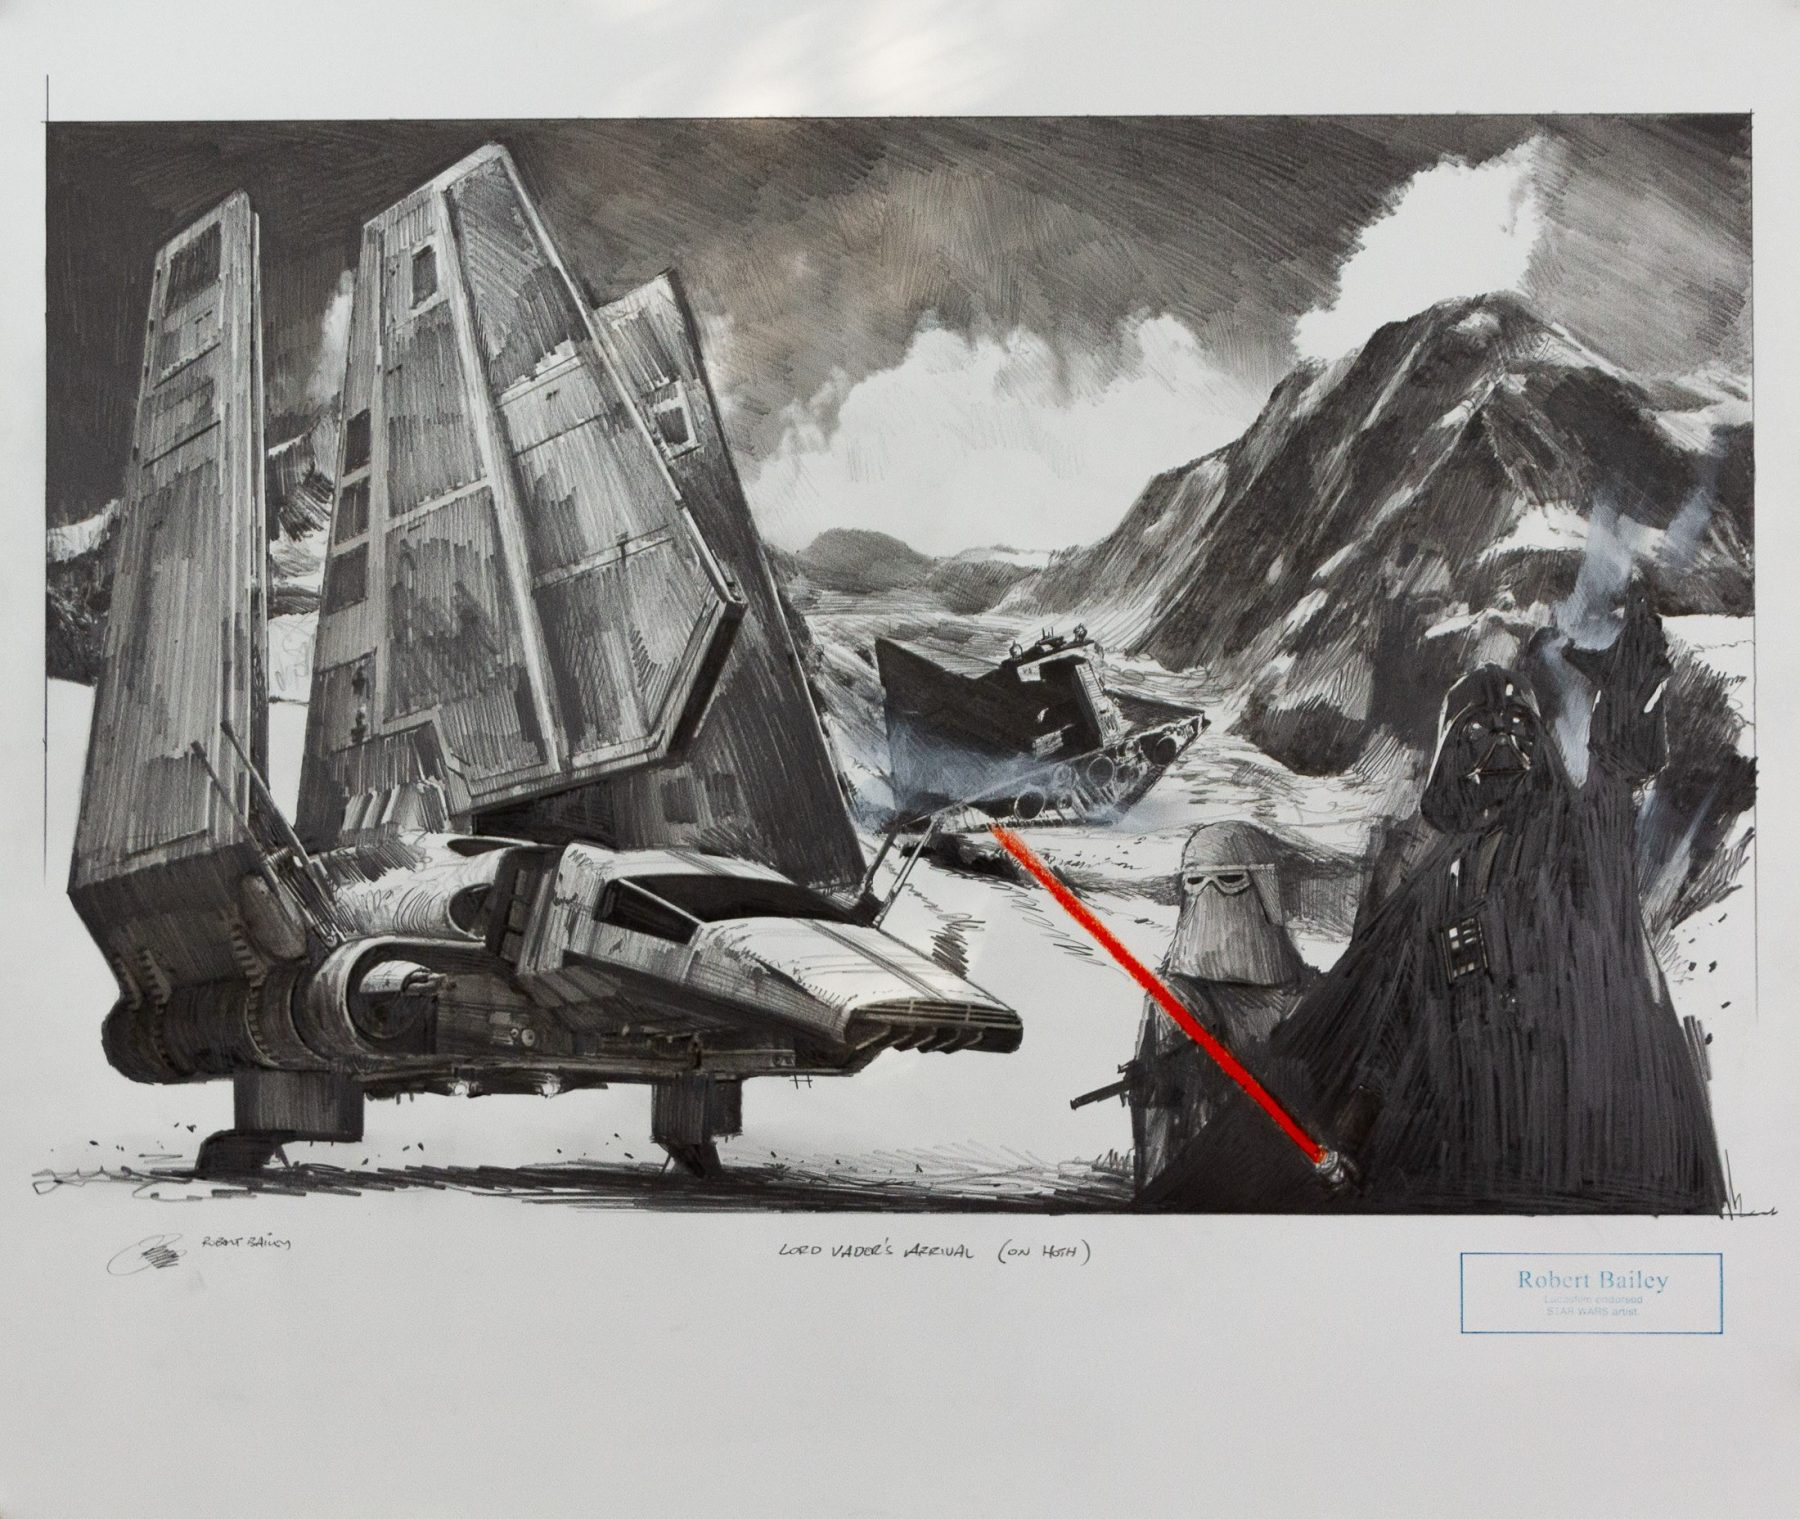 Lord Vader's Arrival - Bailey, Robert - k-2012RB4